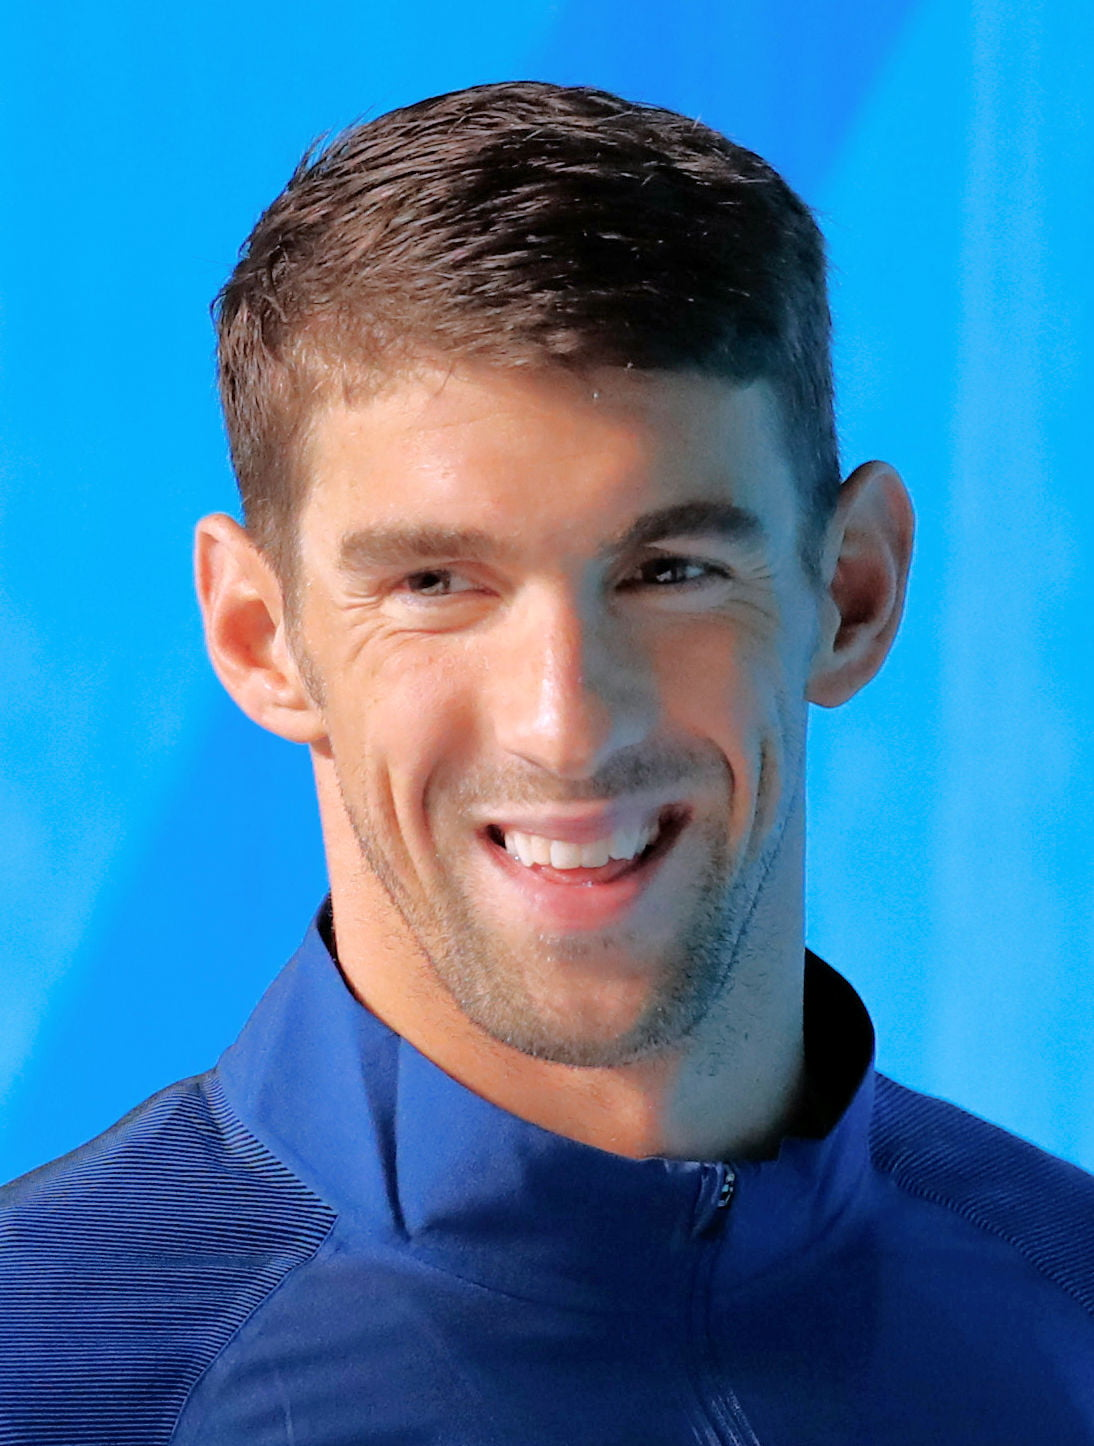 Michael Phelps Olympic swimmer and keynote sports speaker